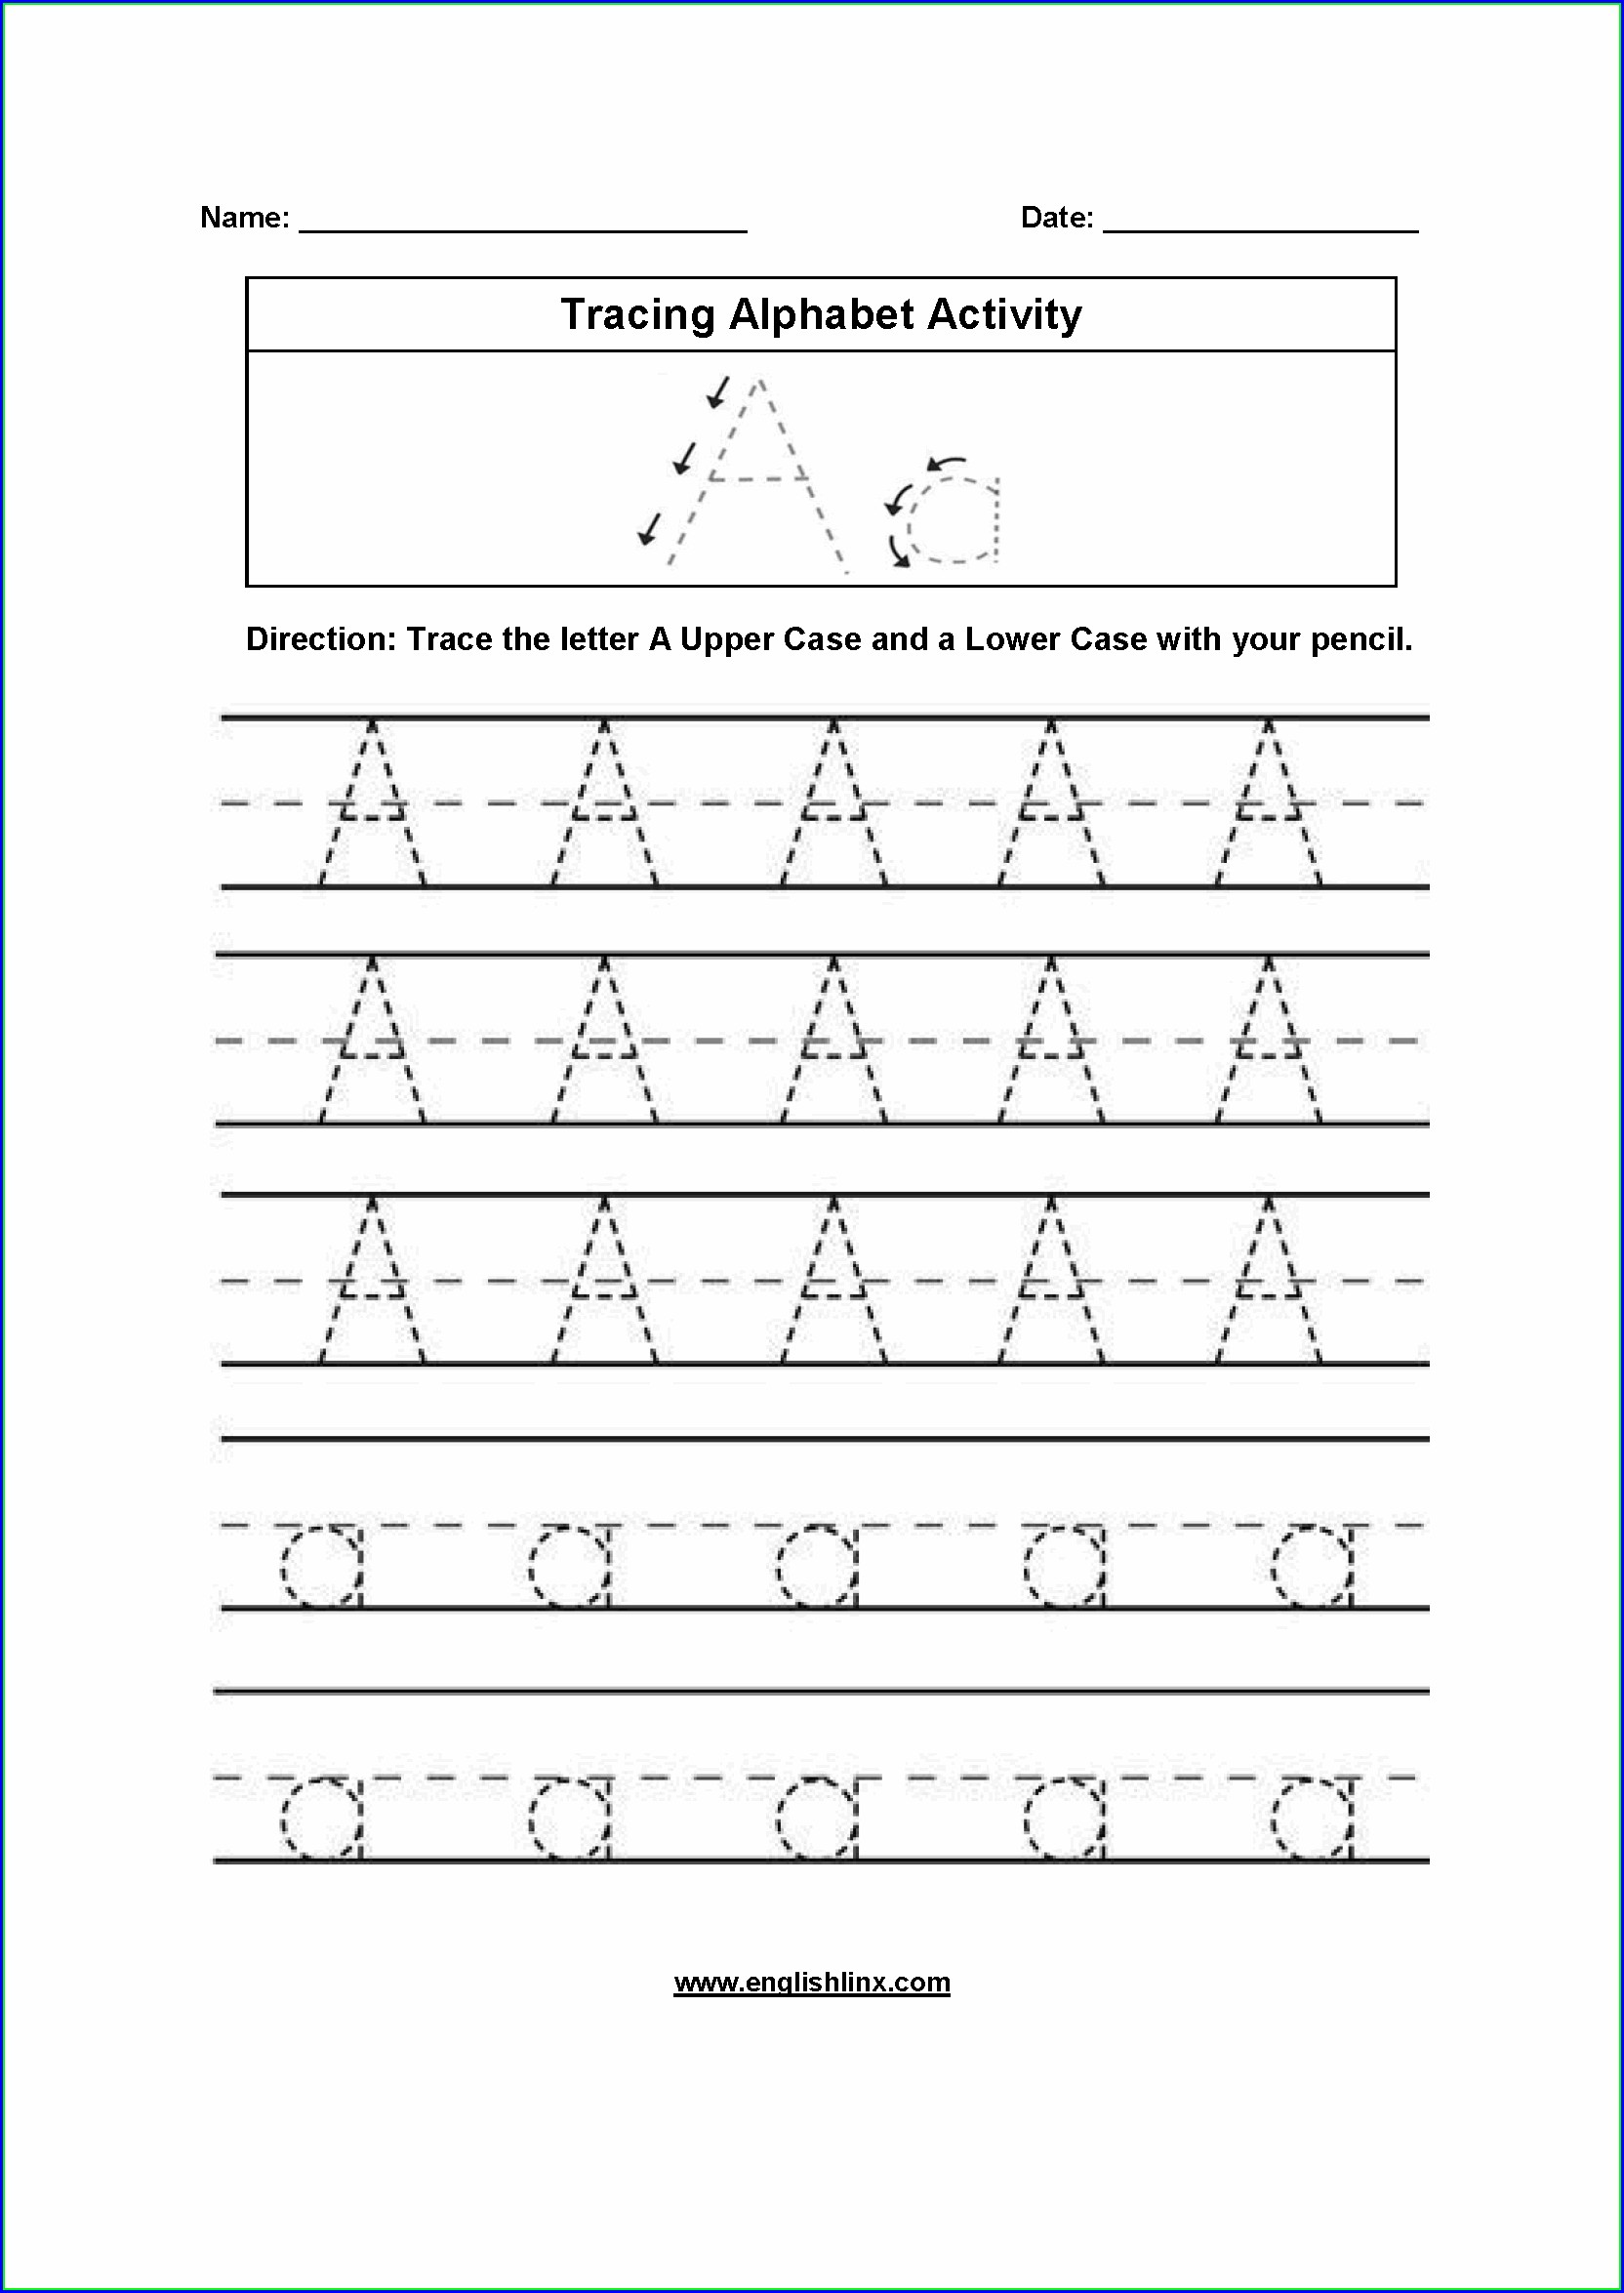 Preschool Handwriting Without Tears Letter Order